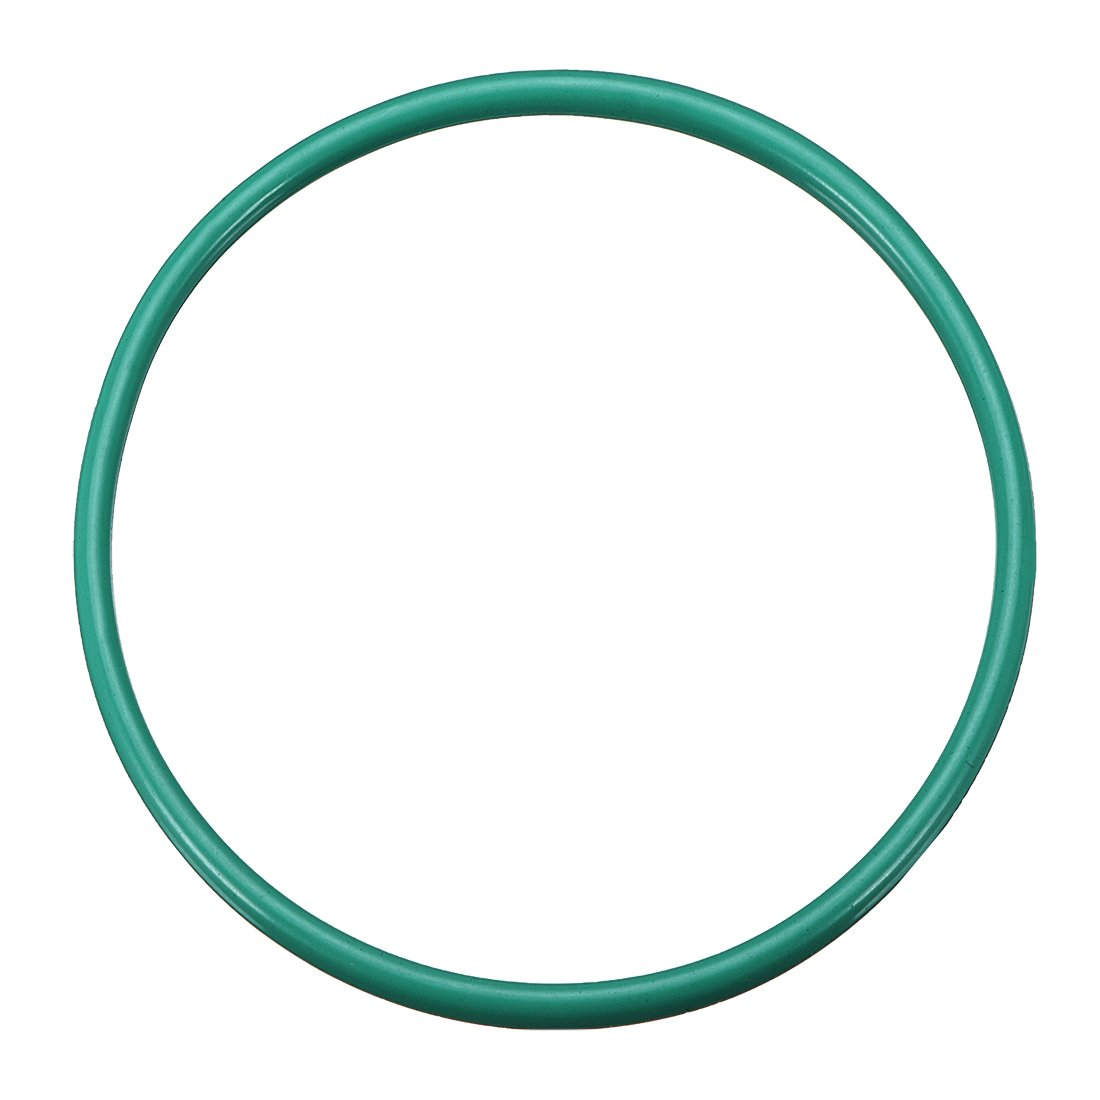 1-1//16 ID 1-7//16 OD Sur-Seal Inc. Sterling Seal ORSIL318x1000 Number-318 Standard Silicone O-Ring has Excellent Resistance to Oxygen Pack of 1000 1-7//16 OD Ozone and Sunlight Vinyl Methyl Silicone Pack of 1000 1-1//16 ID